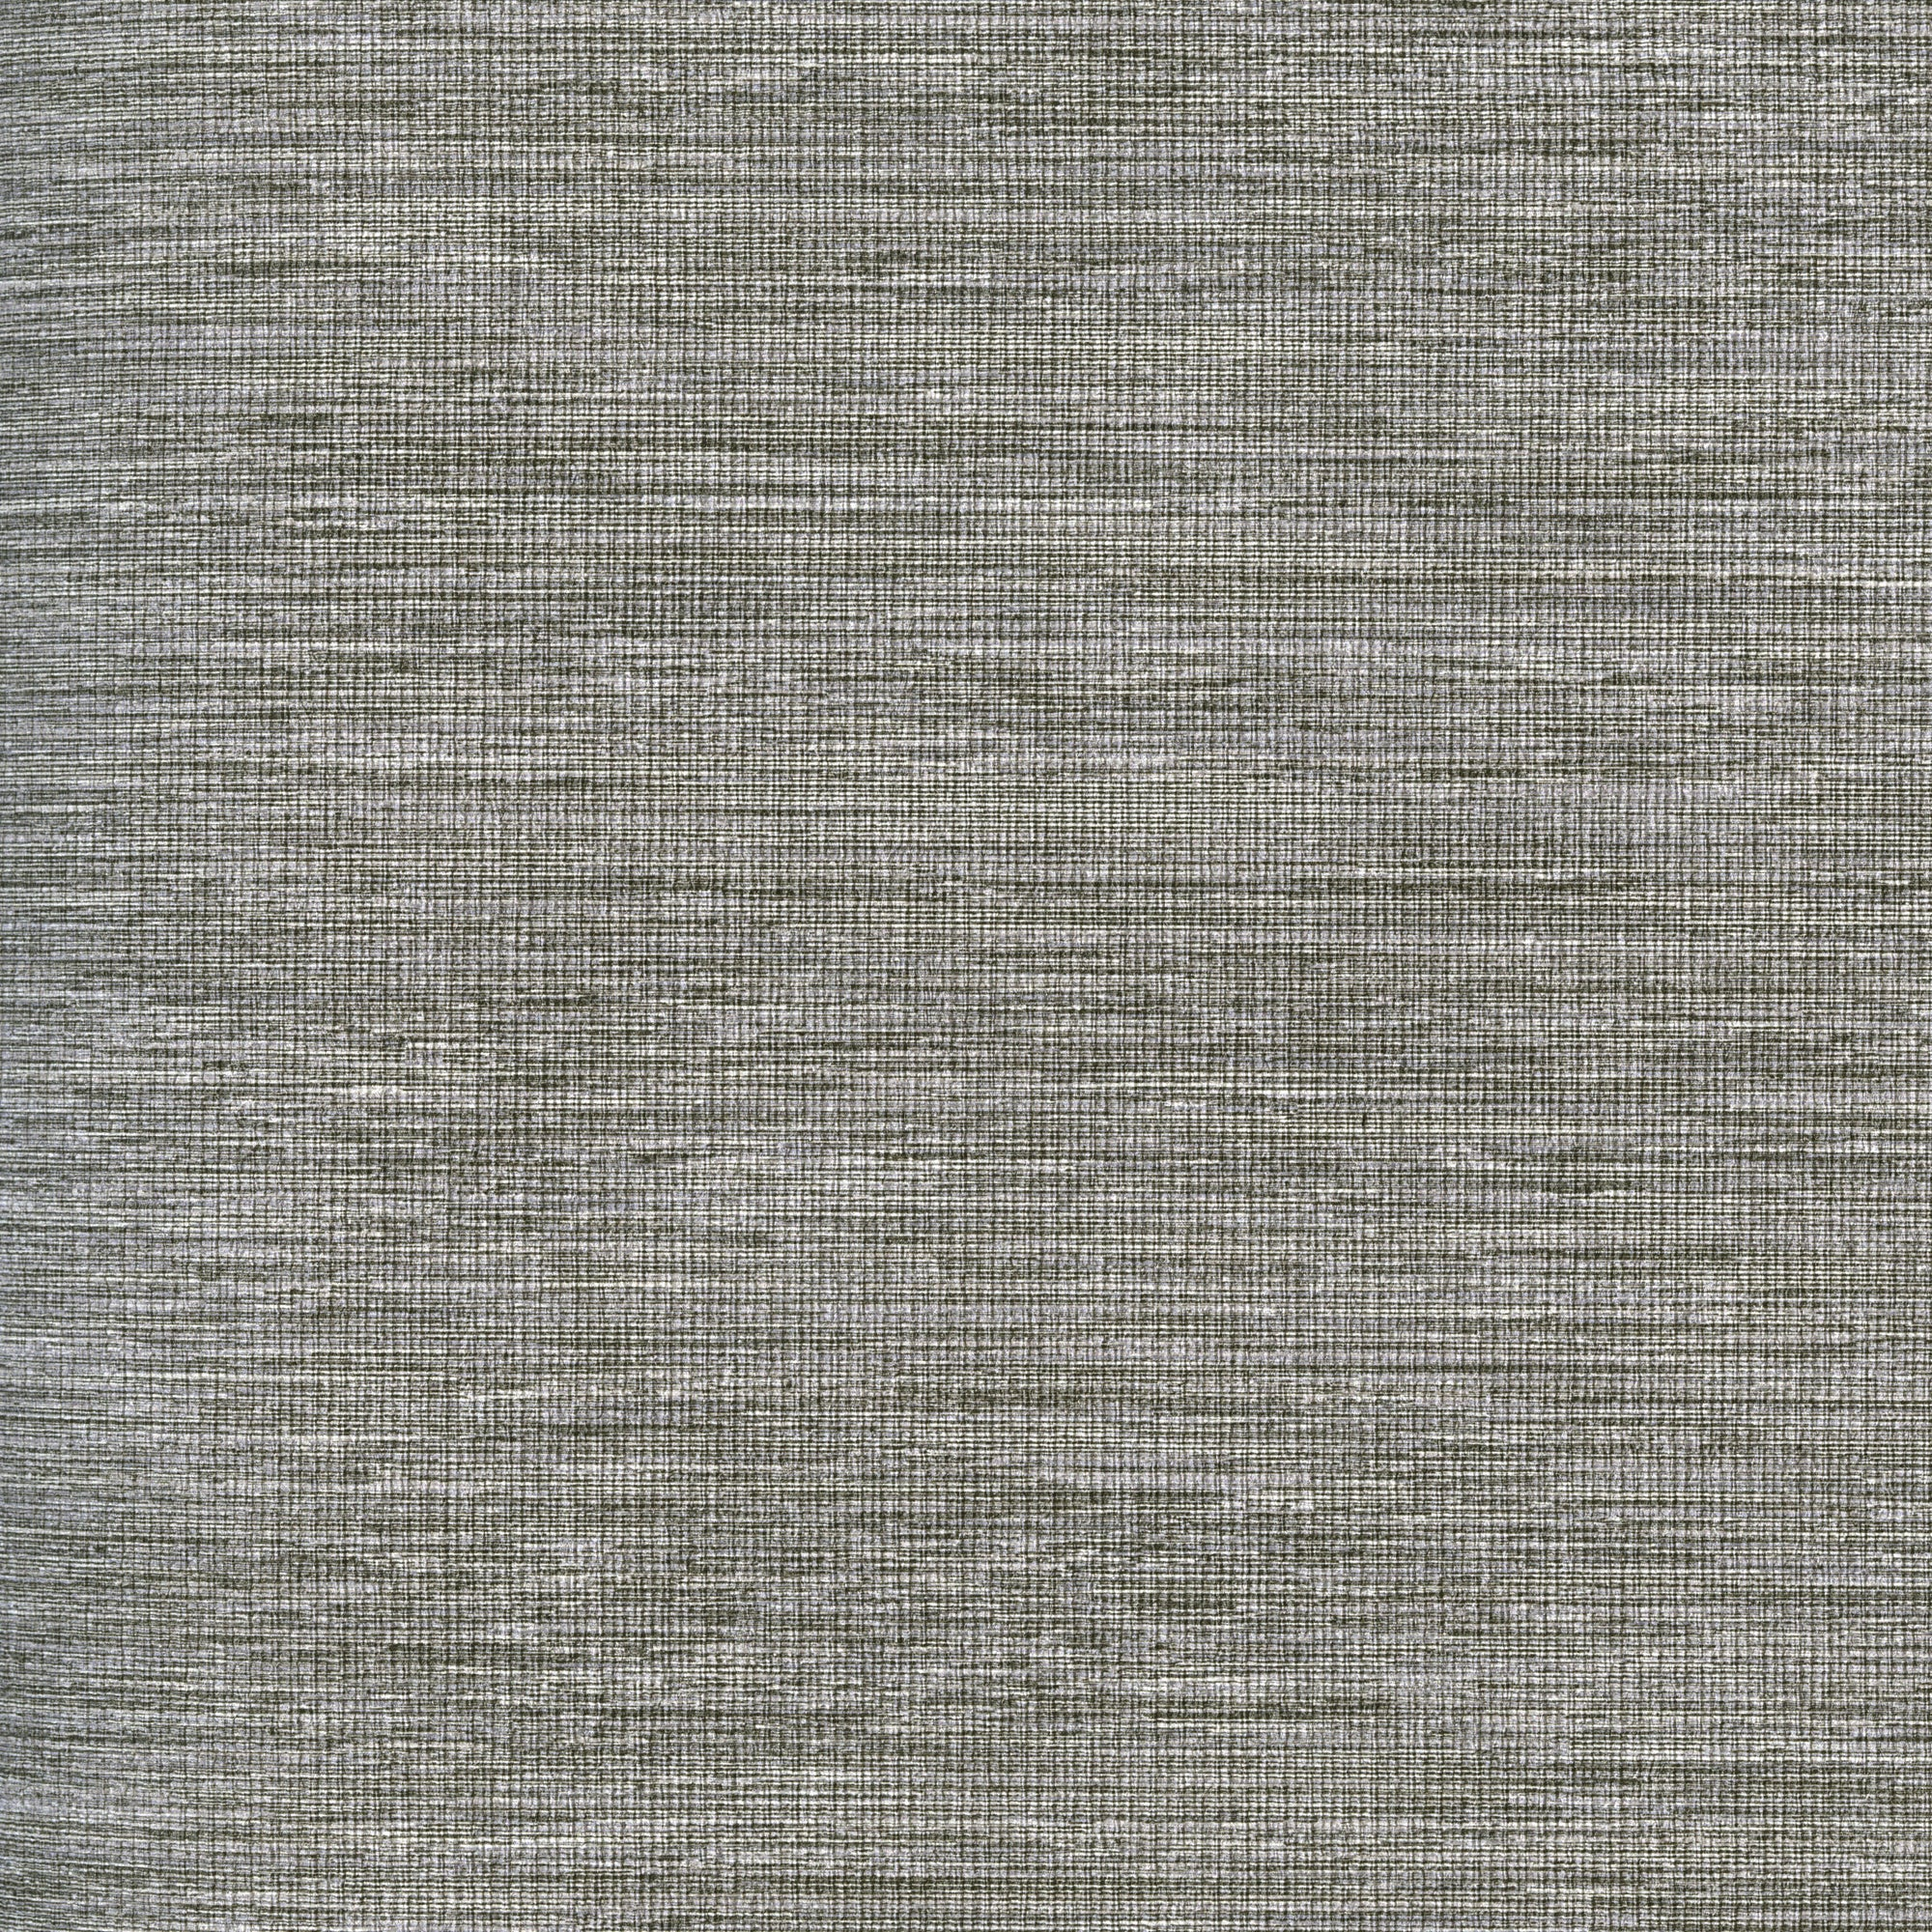 Faux Grasscloth In Grey, 8161 97